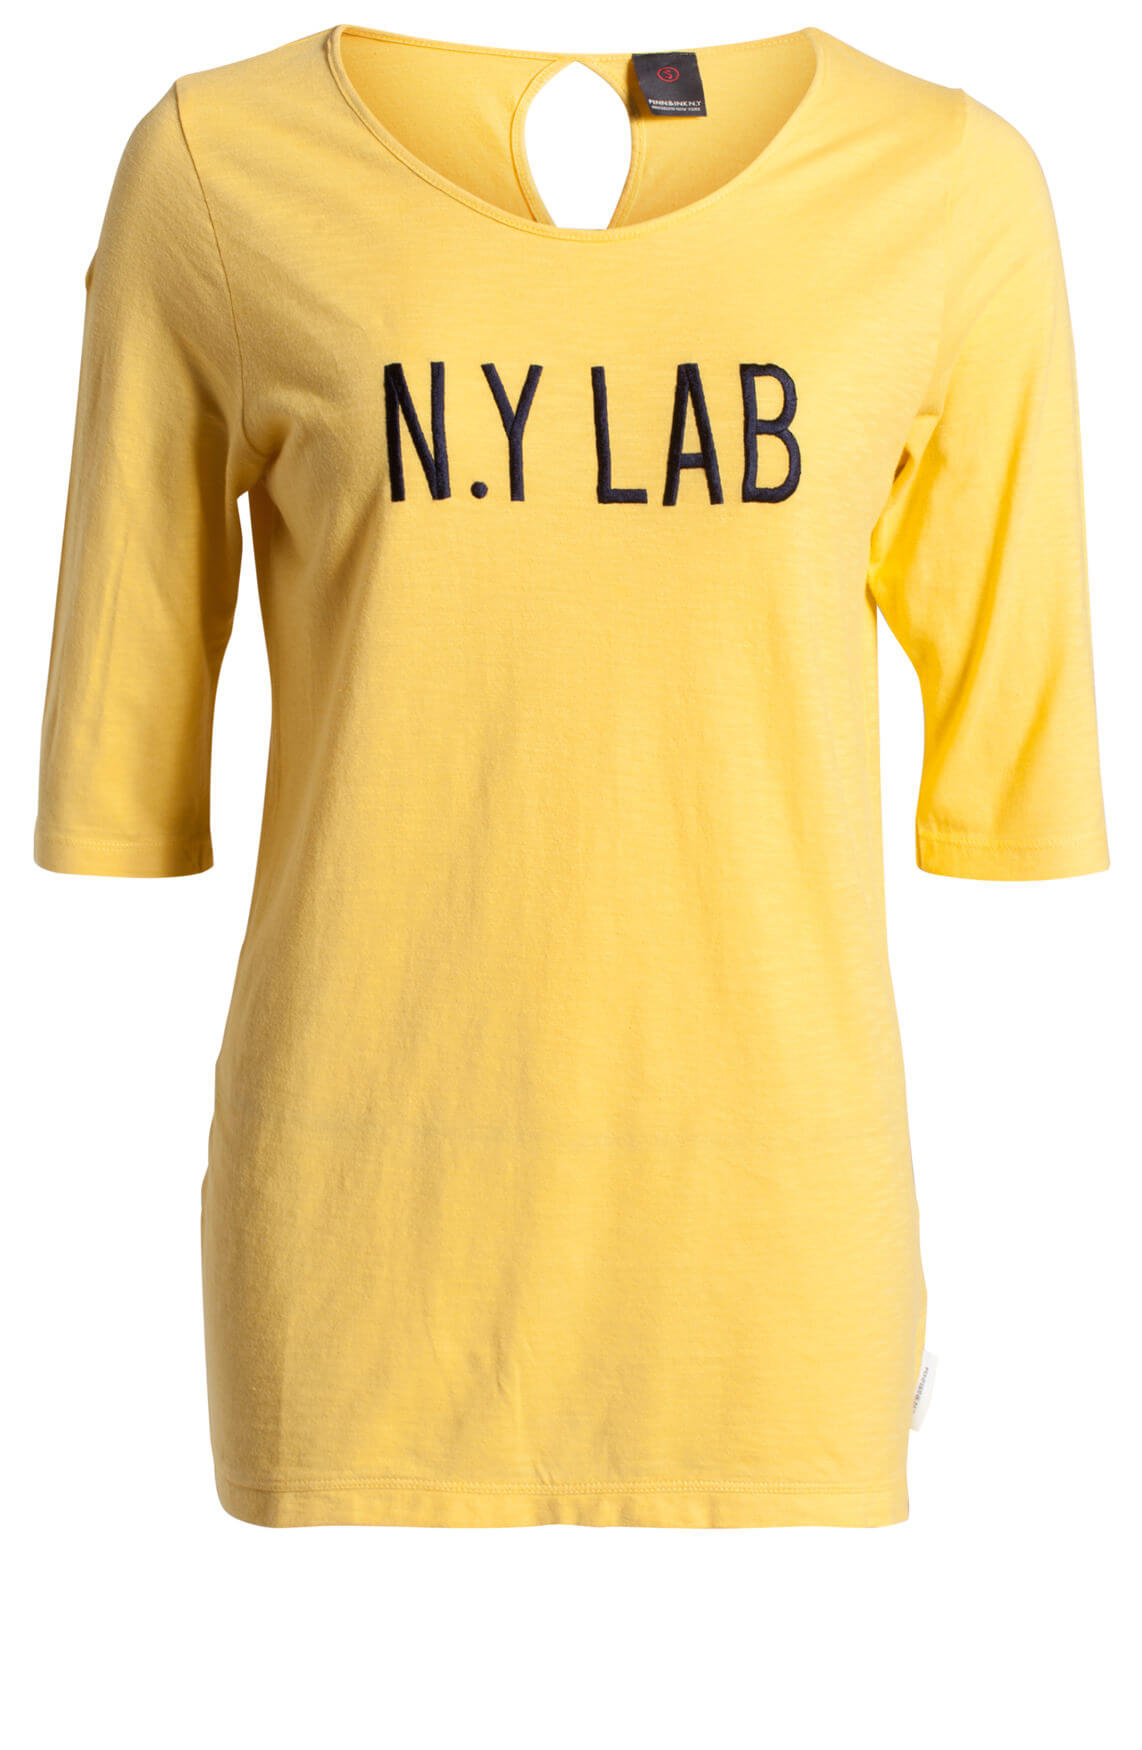 Penn & Ink Dames Shirt N.Y LAB geel